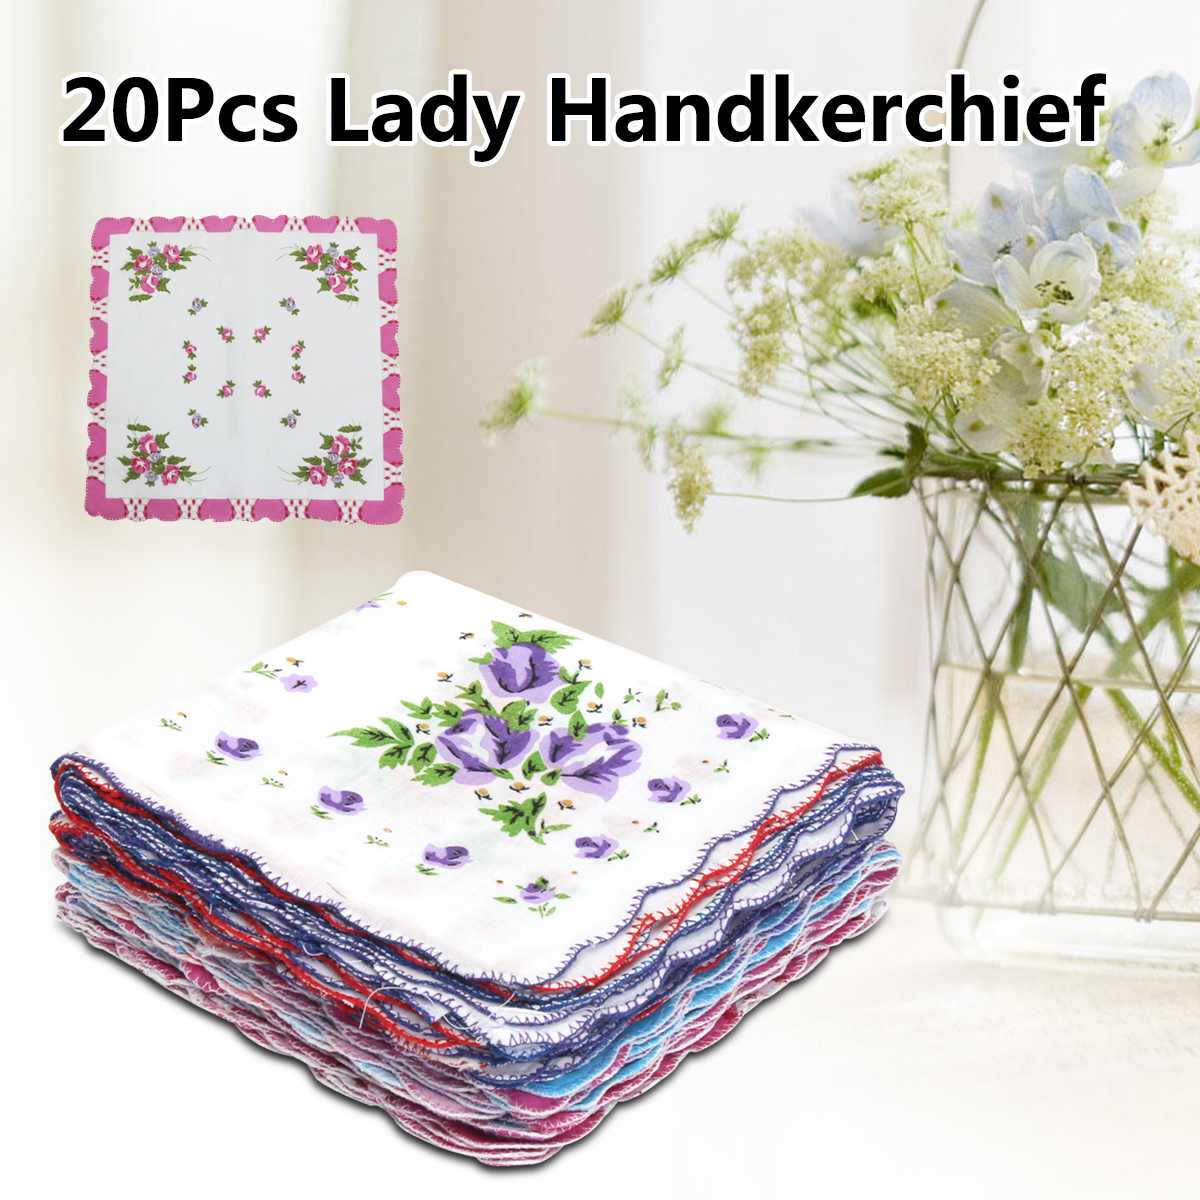 20Pcs/lot Vintage Style Floral Flowers Handkerchief Lady Women Kids Cotton Hanky Cotton Square Handkerchief Hand Towels Decor